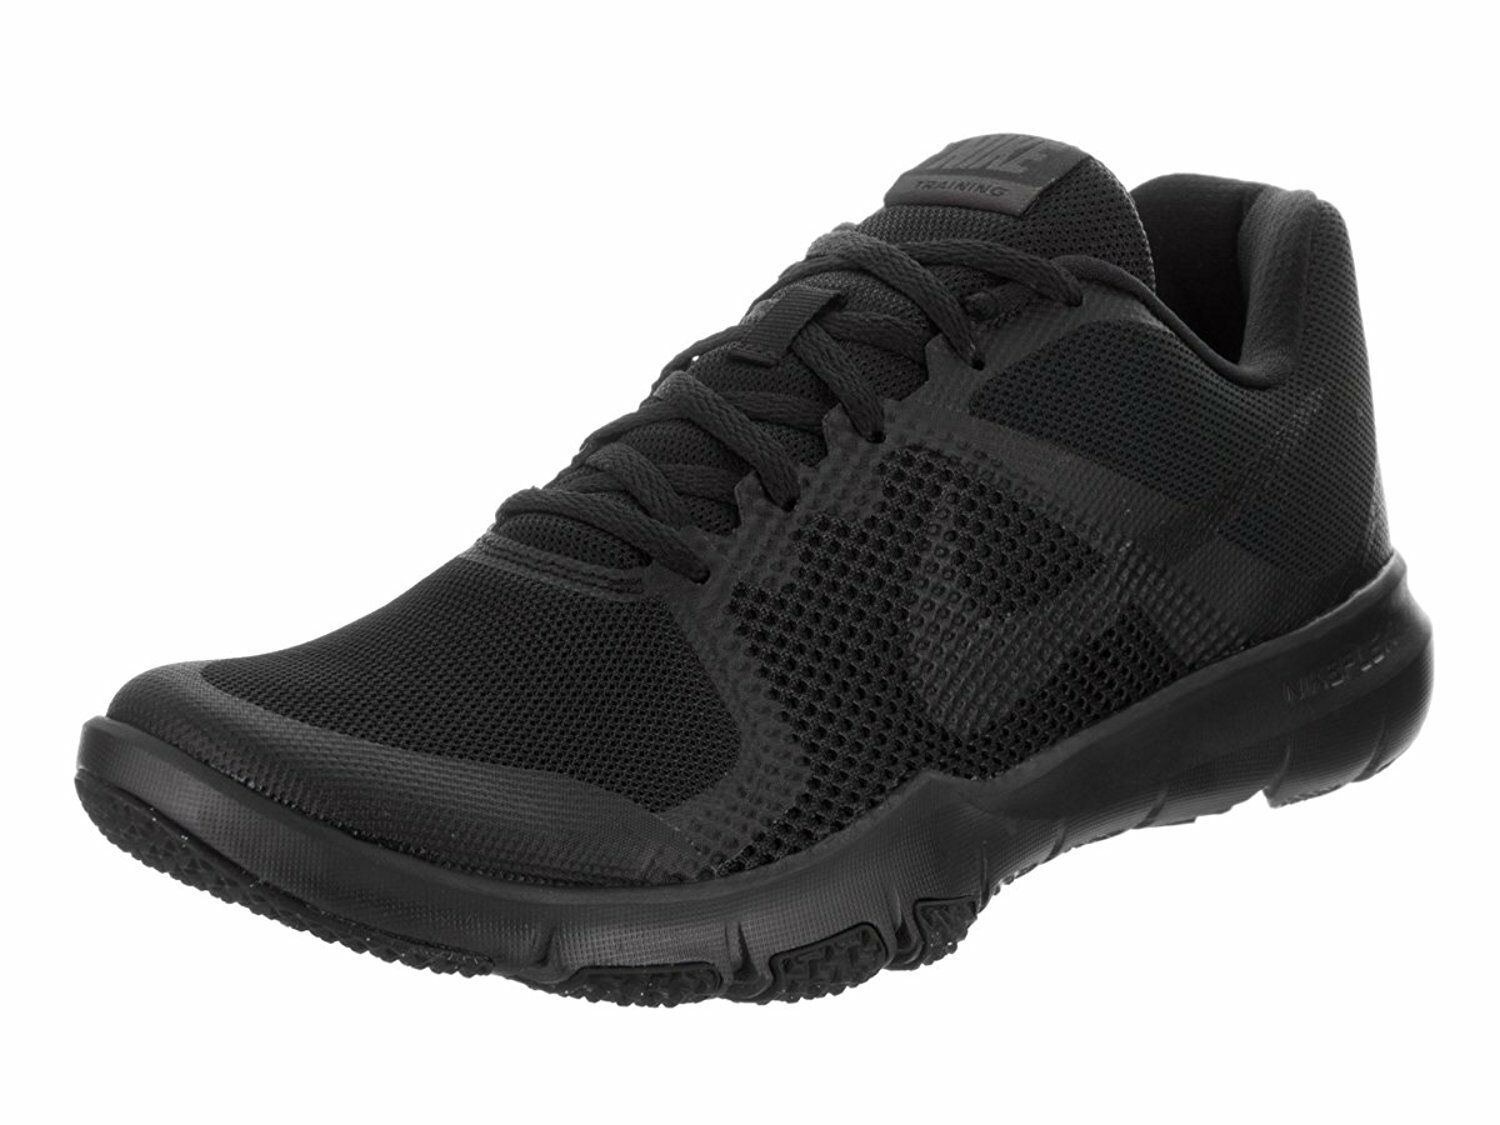 Men's Nike Flex Control Training Shoes, 898459 001 Multiple Sizes Blk/Anthracite